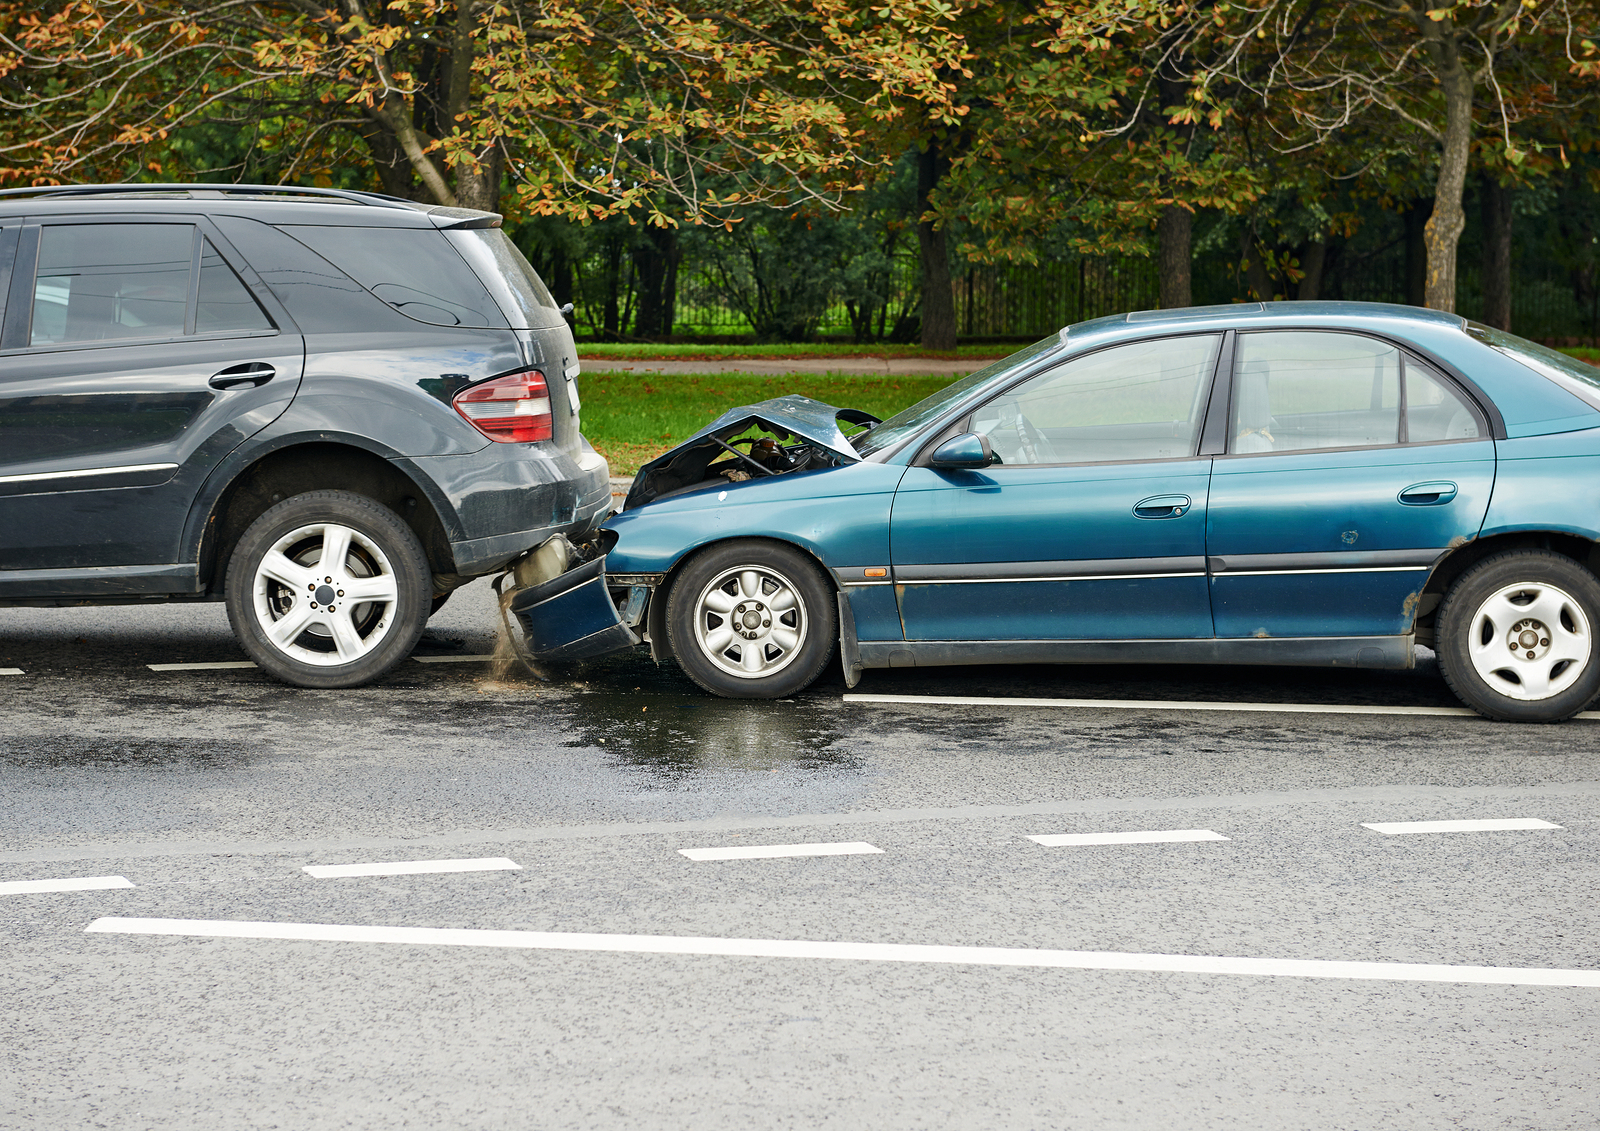 Tailgating Accidents Entitle You to Get Compensation for Your Injuries